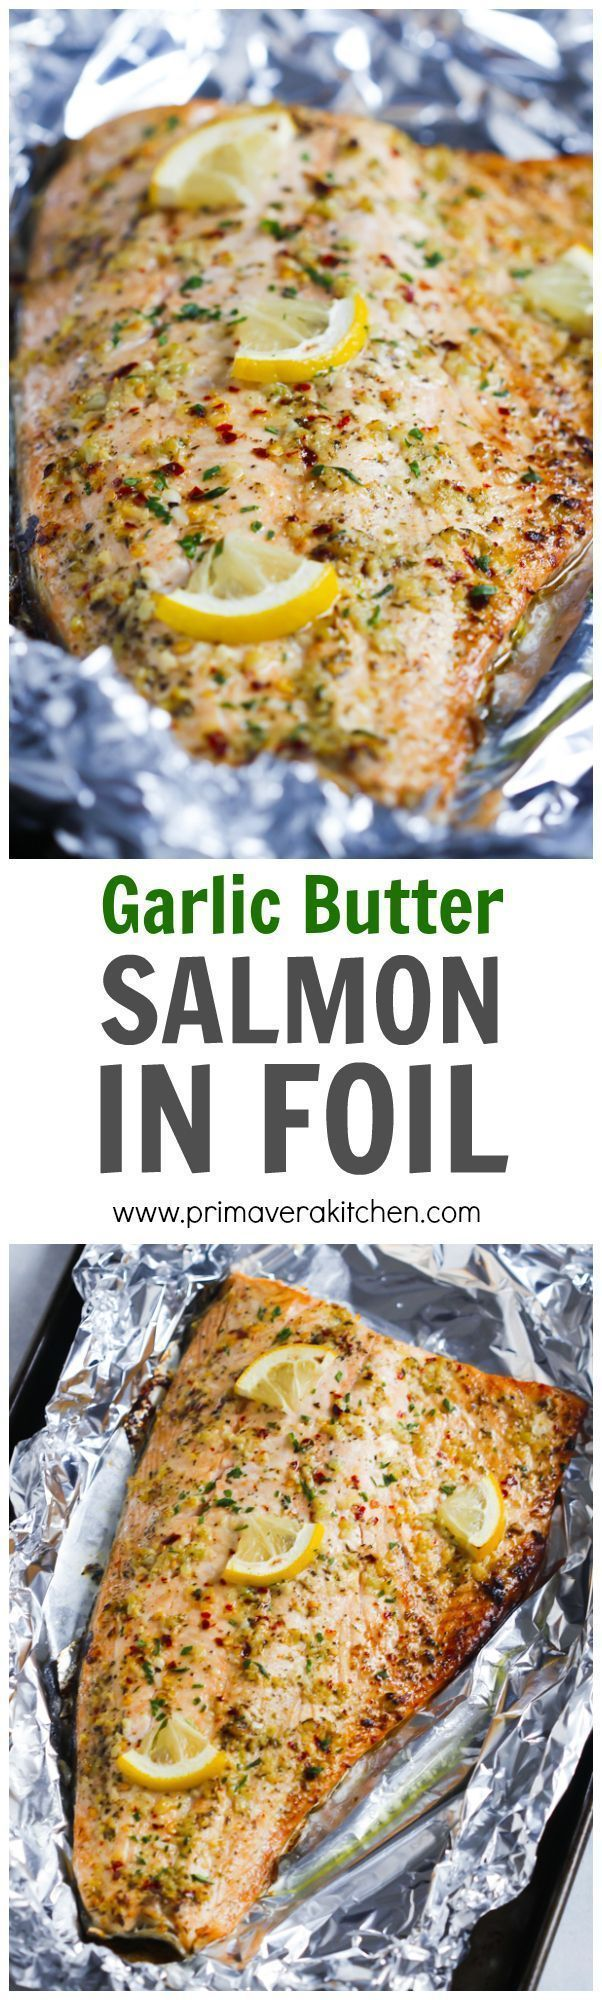 how to cook salmon on bbq in foil